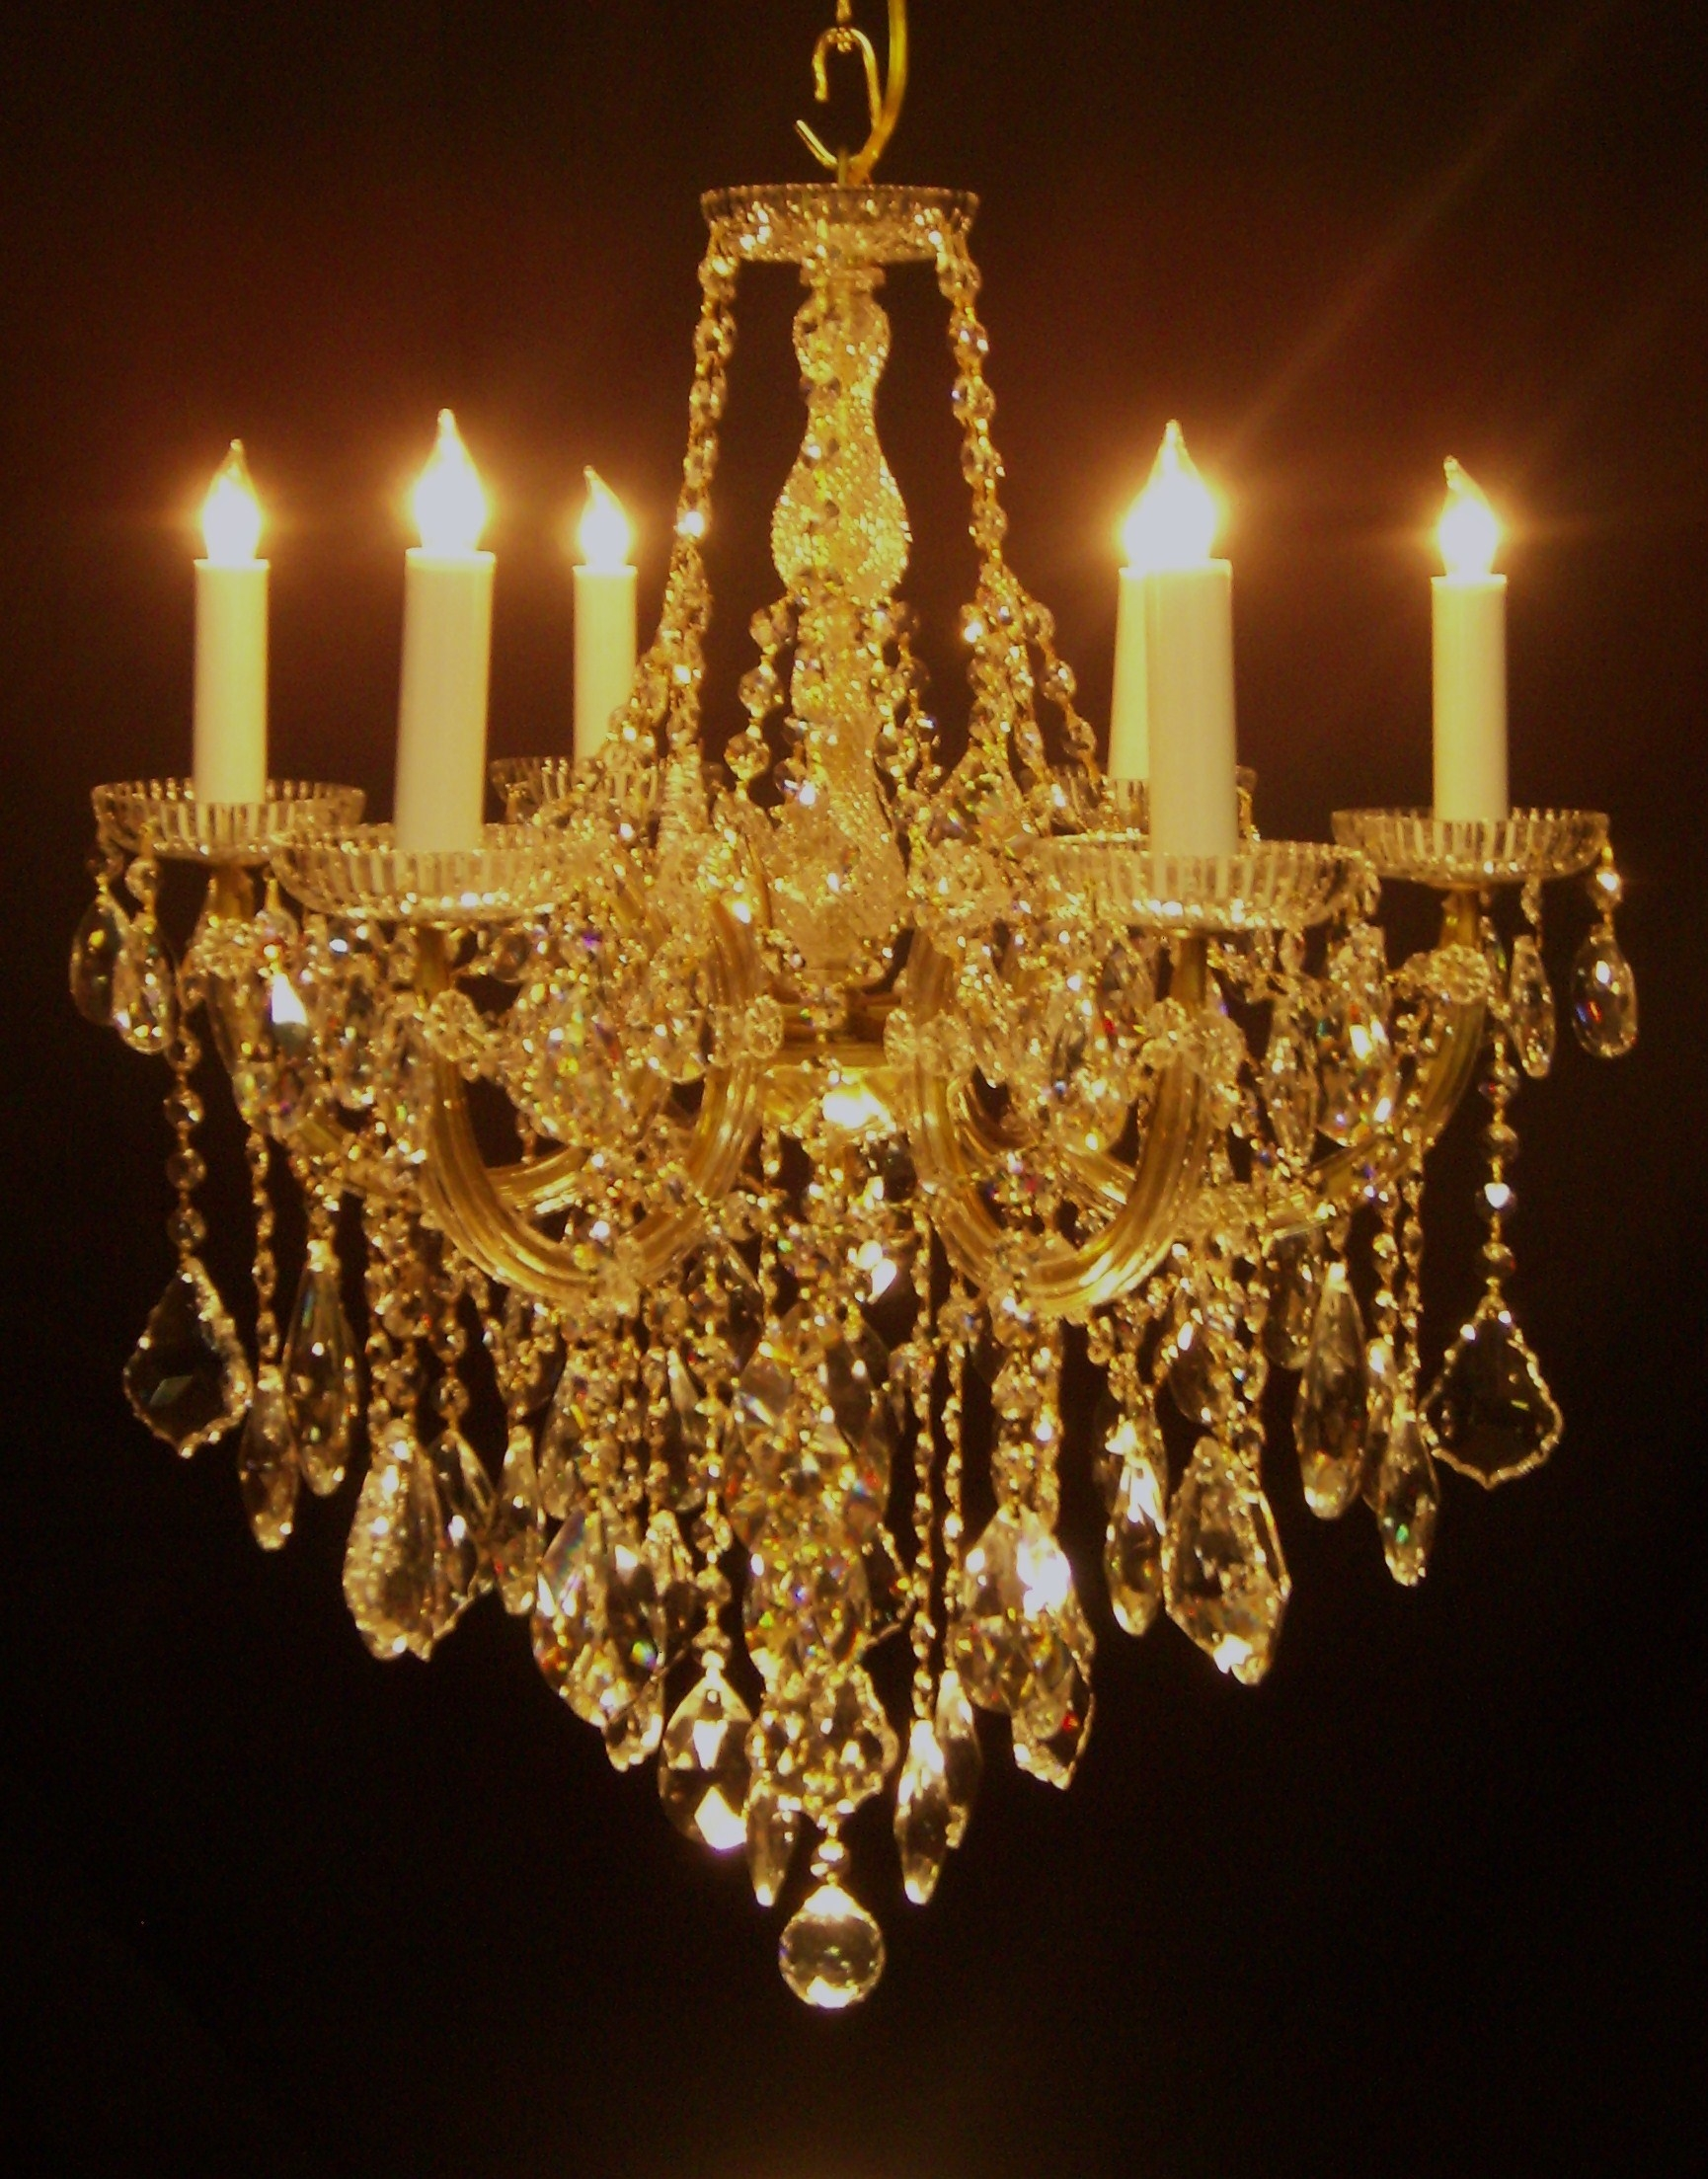 Chandeliers Mortons Antiques Intended For Chandelier Lights (Image 7 of 15)